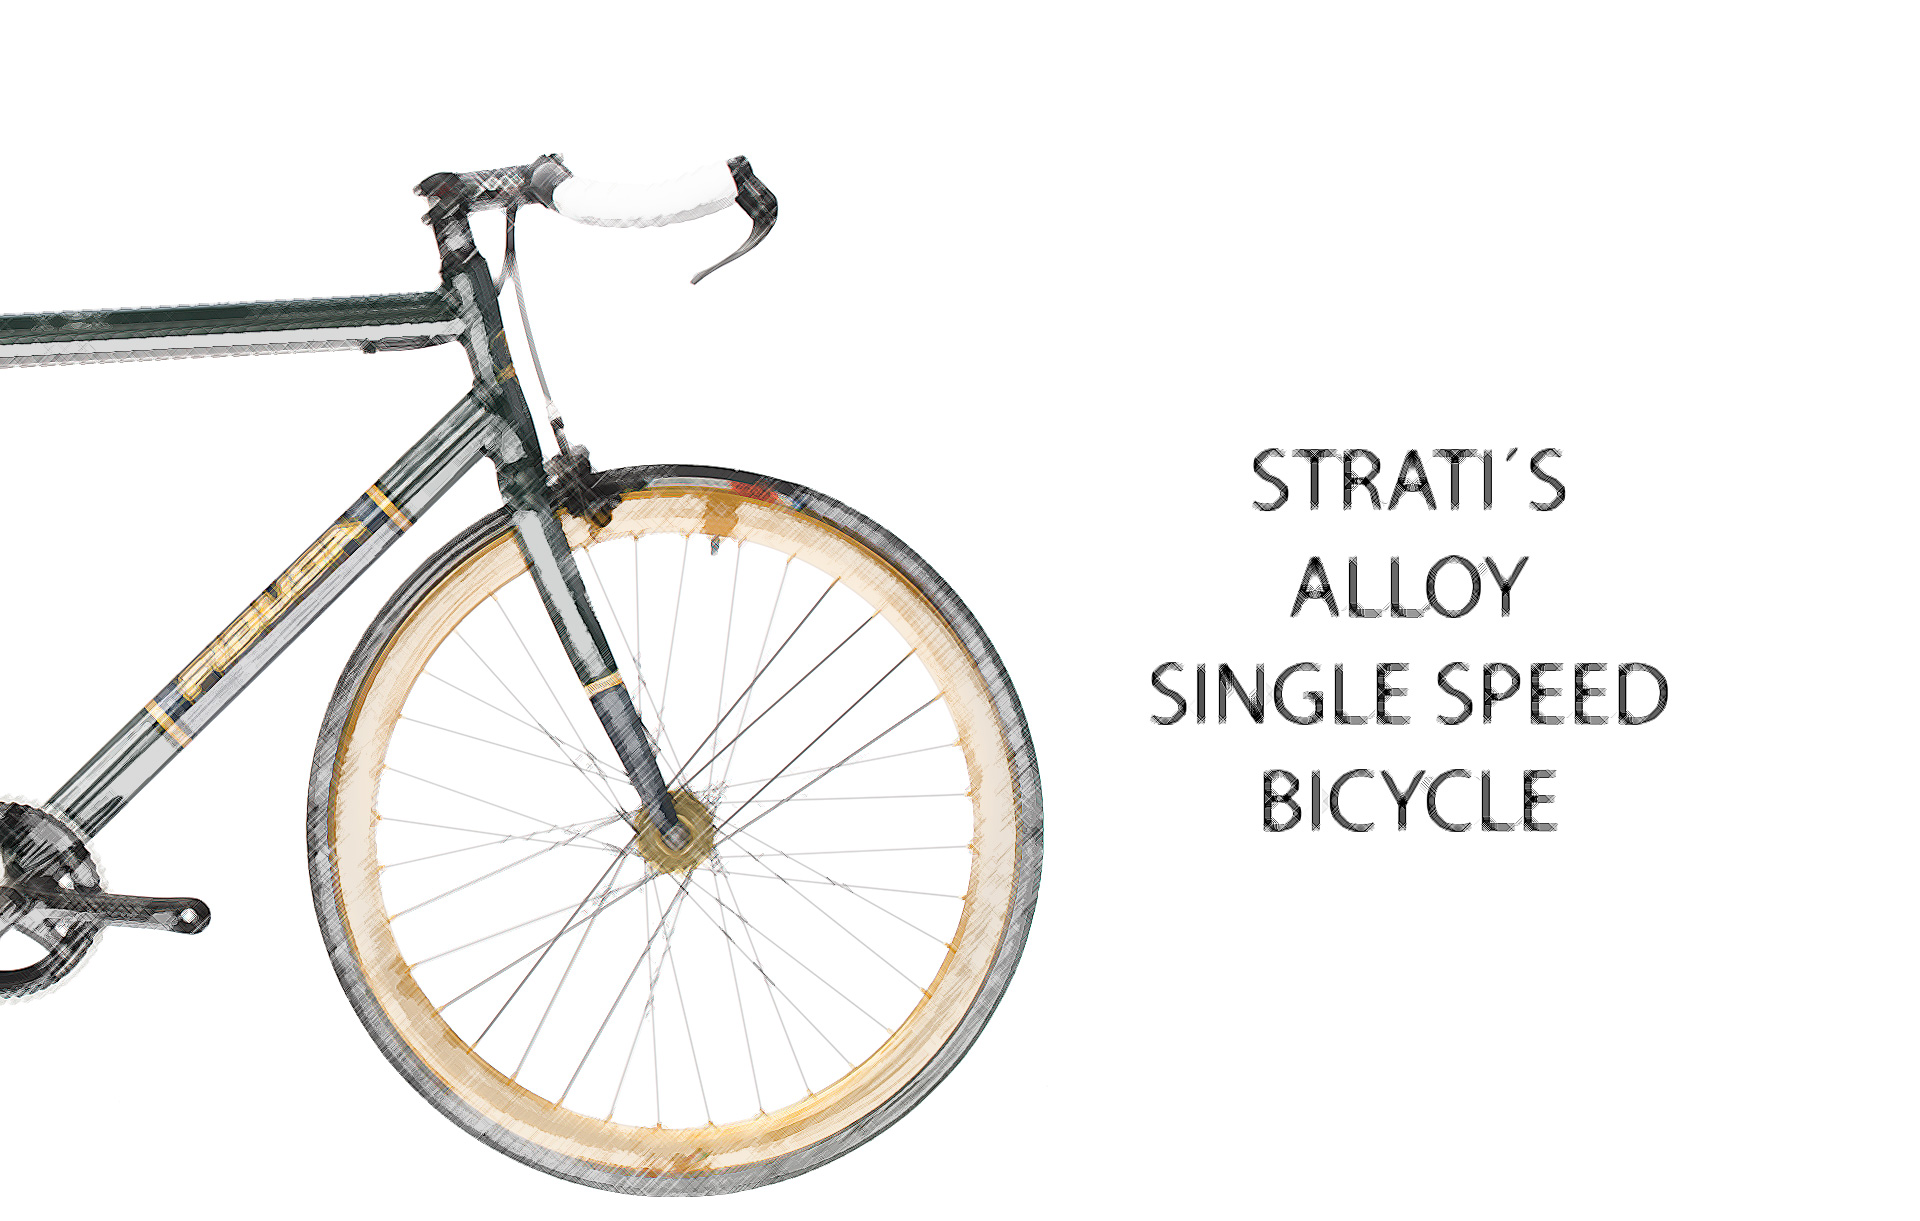 alloy-single-speed-bicycle1 Strati's Alloy Single Speed Bicycle